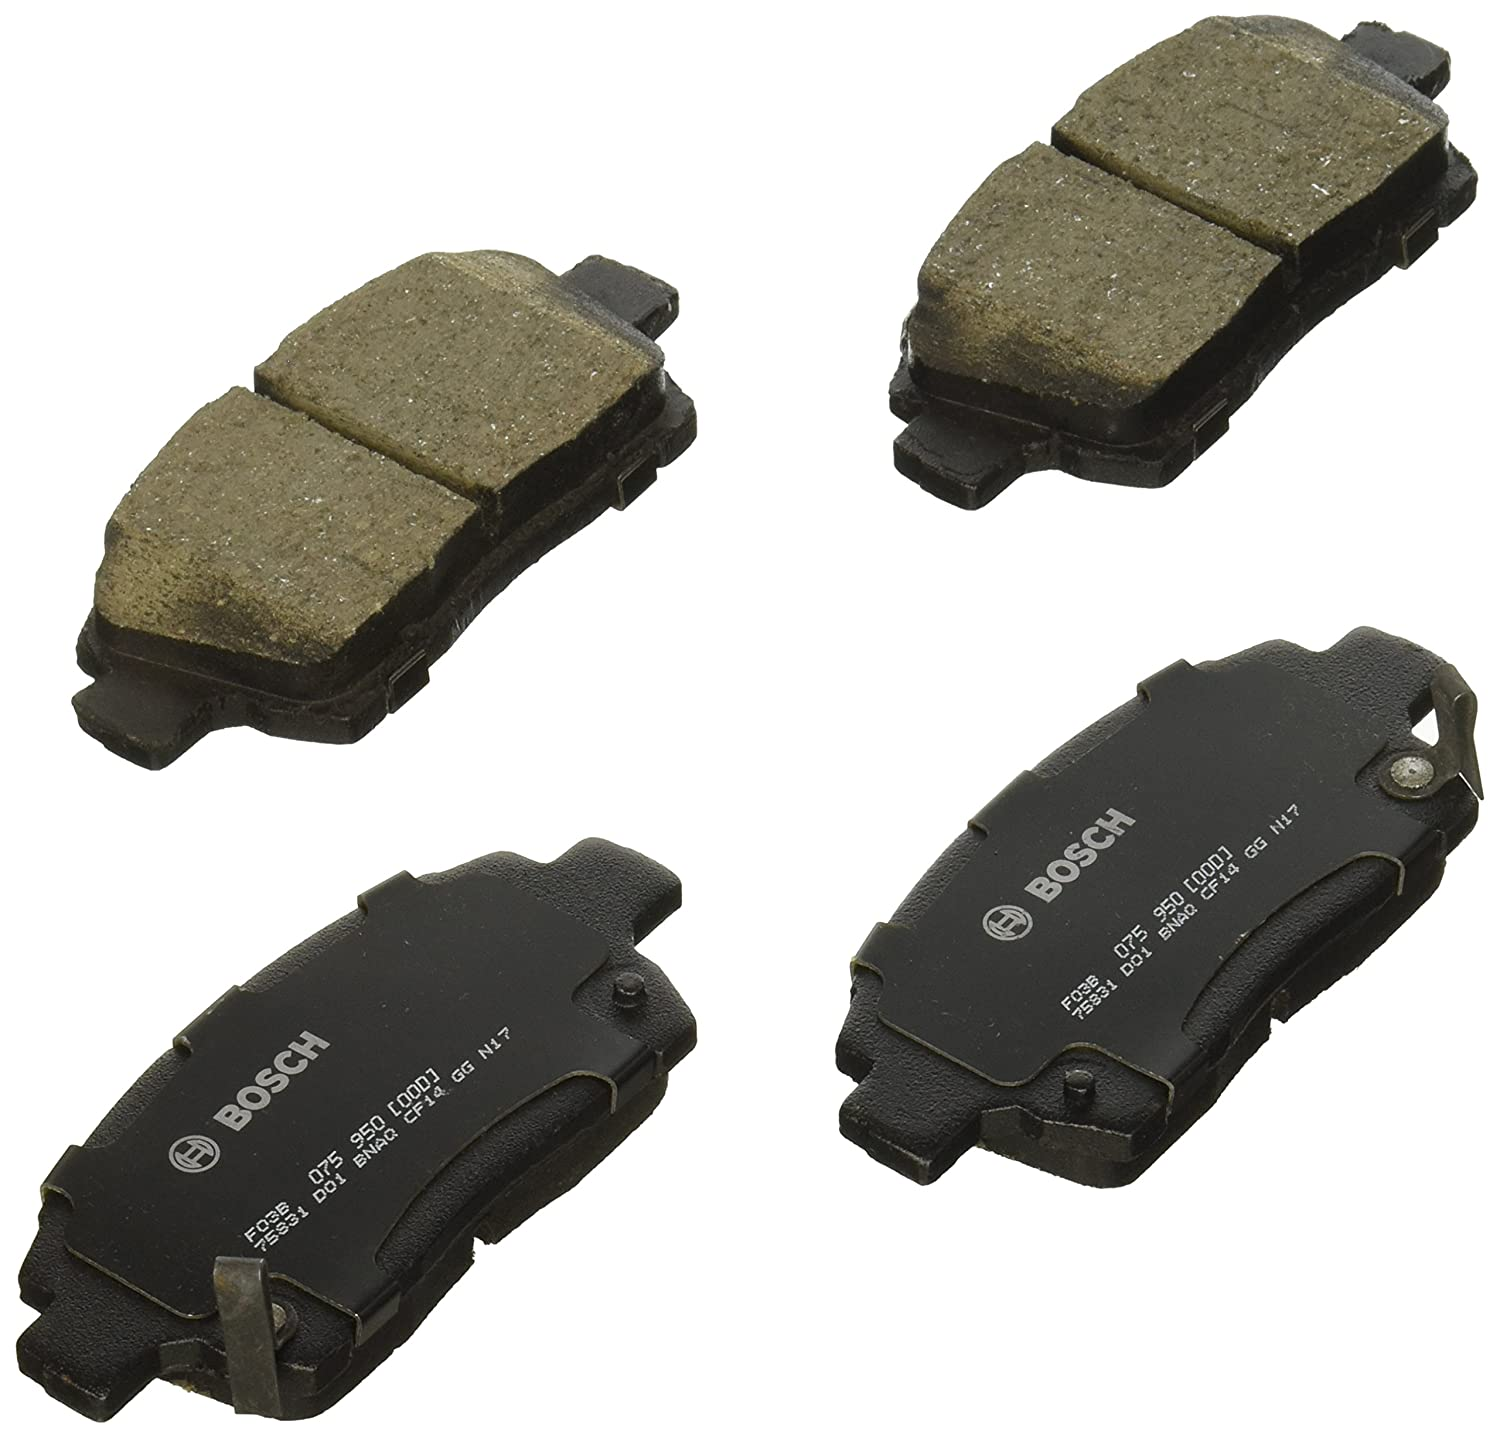 Bosch BC990 QuietCast Premium Disc Brake Pad Set